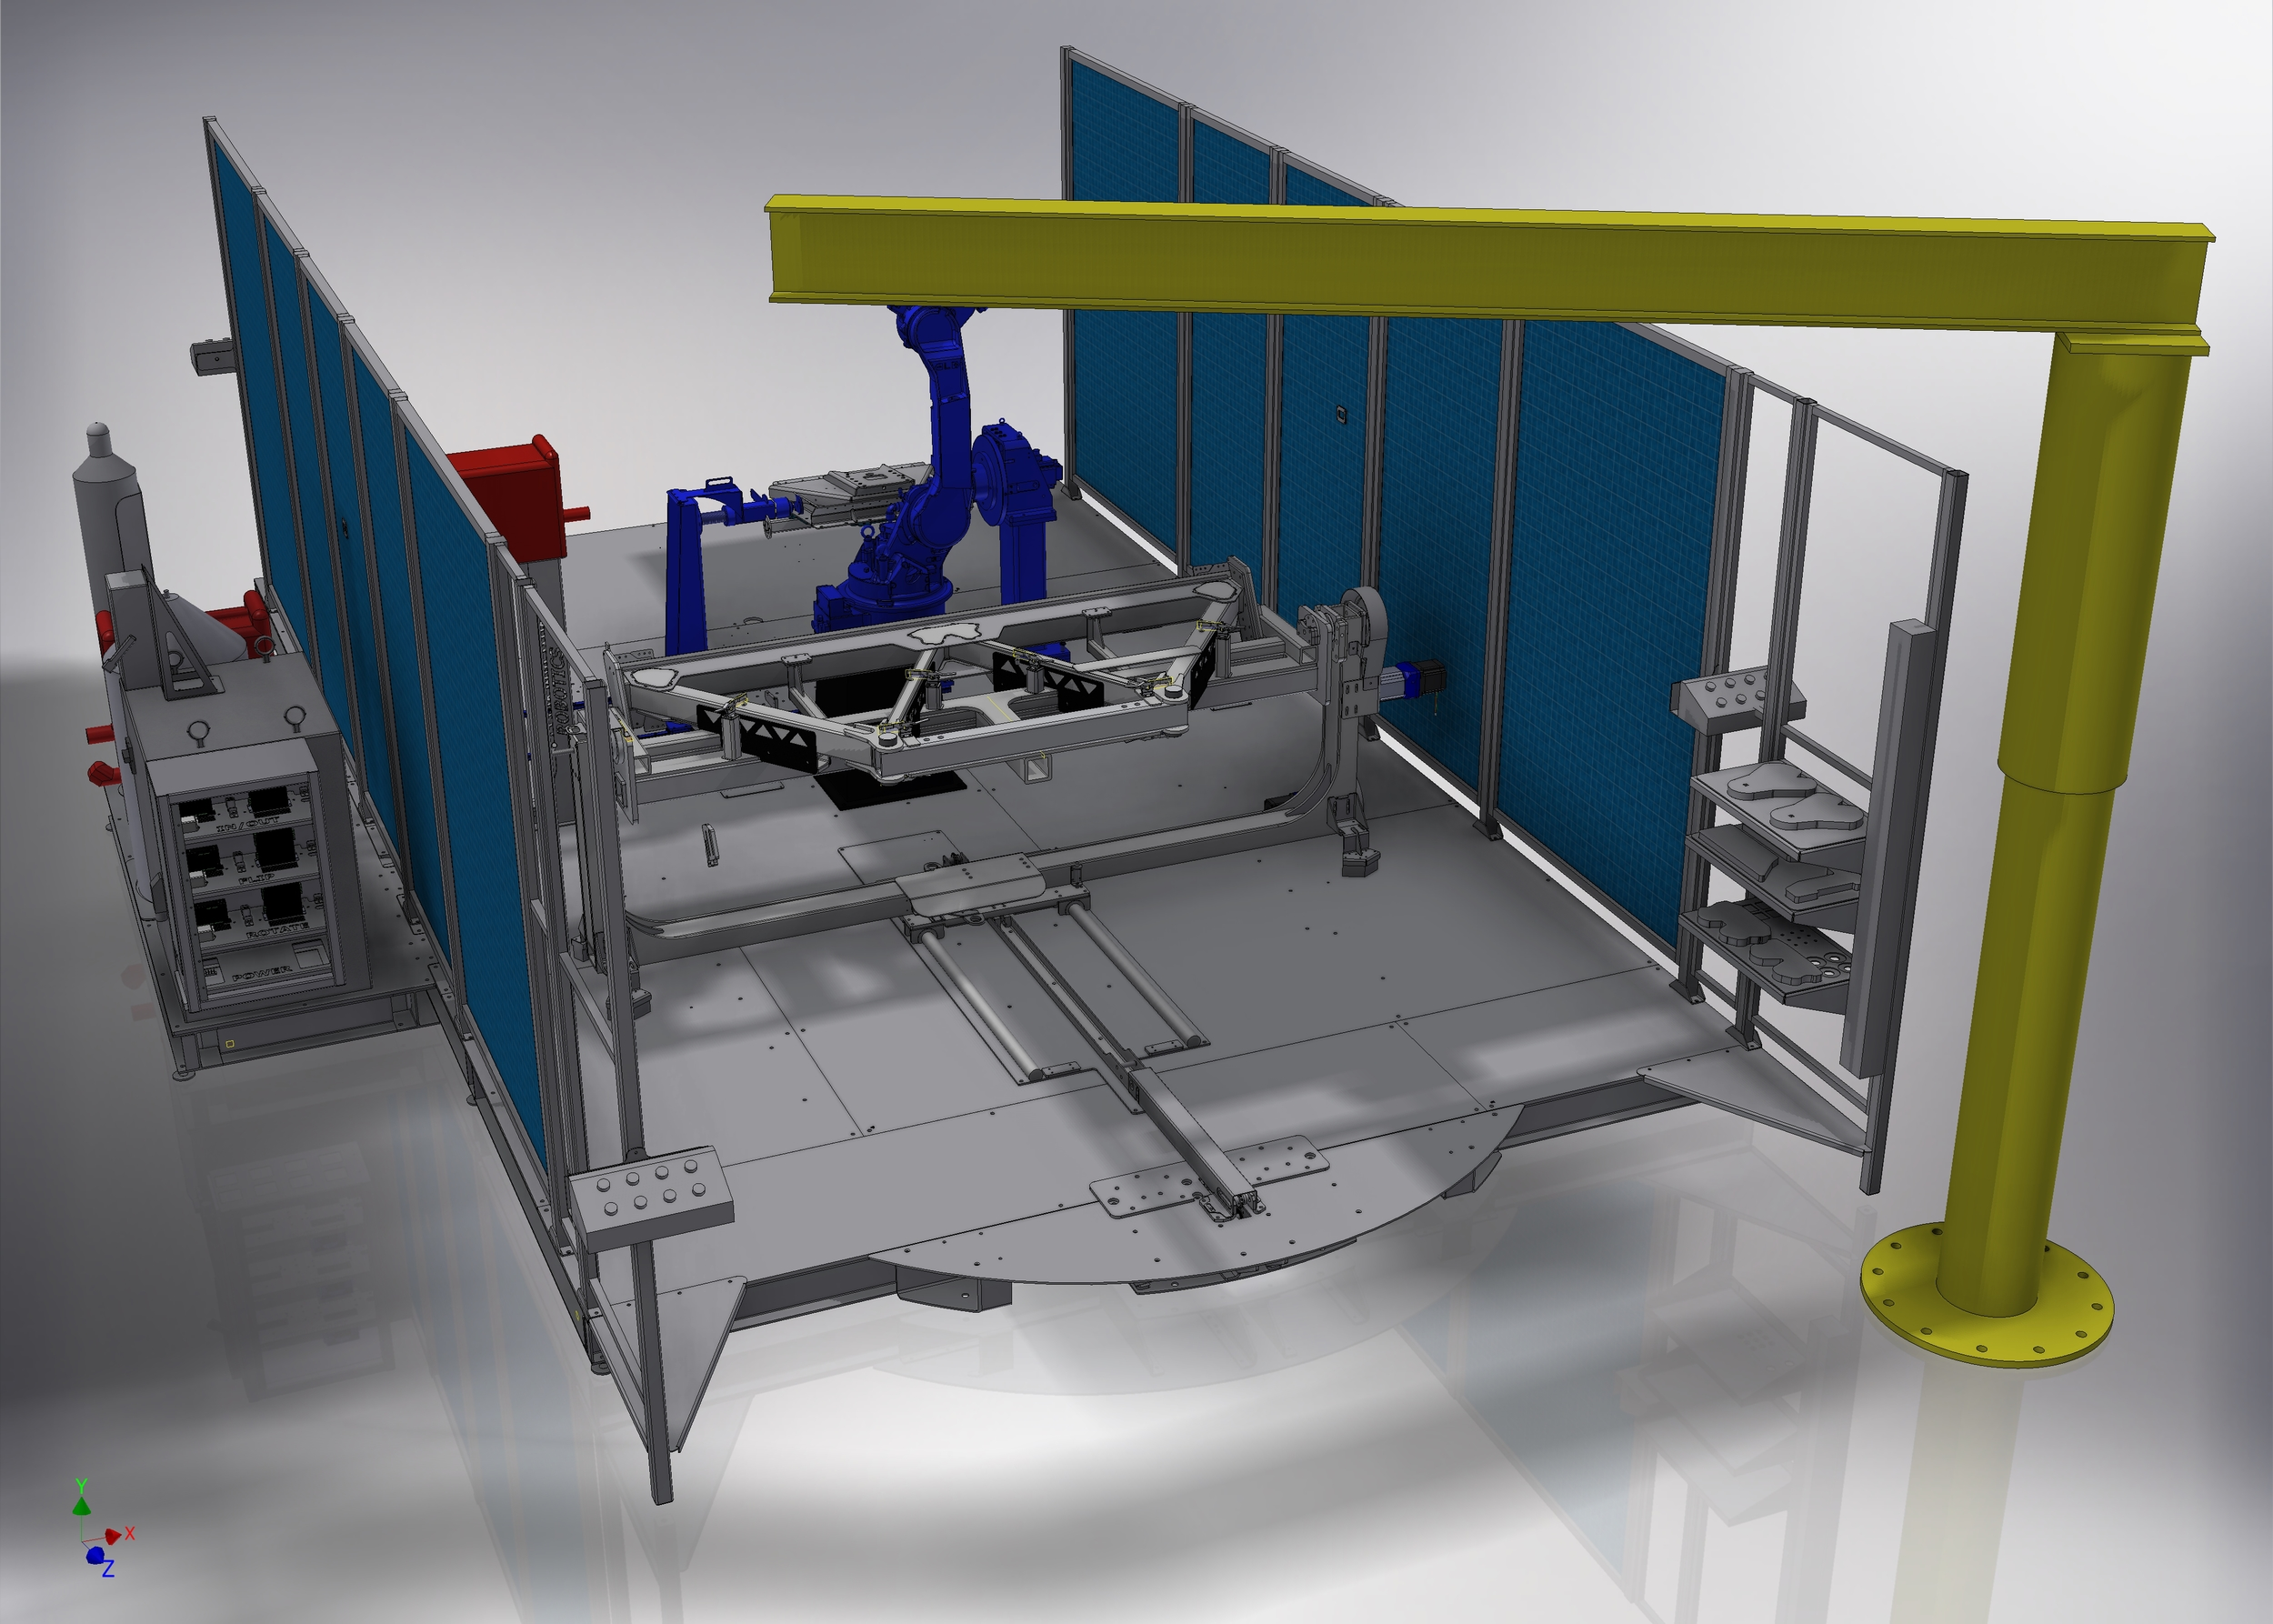 CAD Model of the robotic cell drawn in Autodesk Inventor